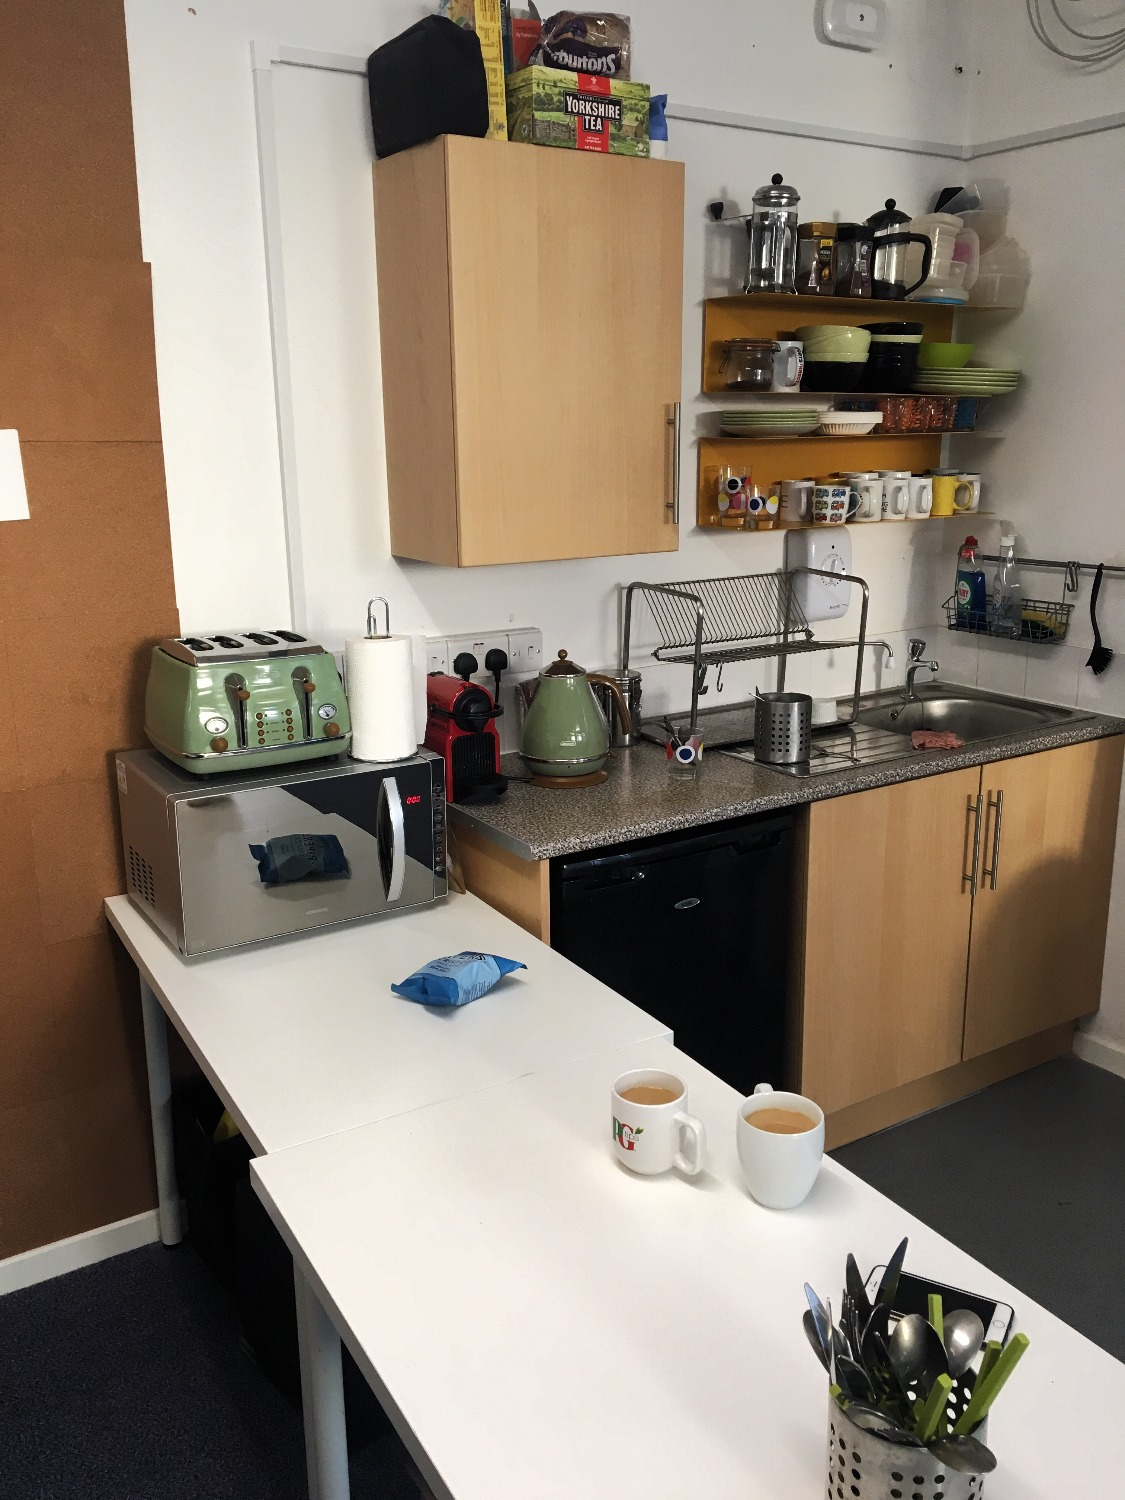 The Fold Space - Kitchen Area